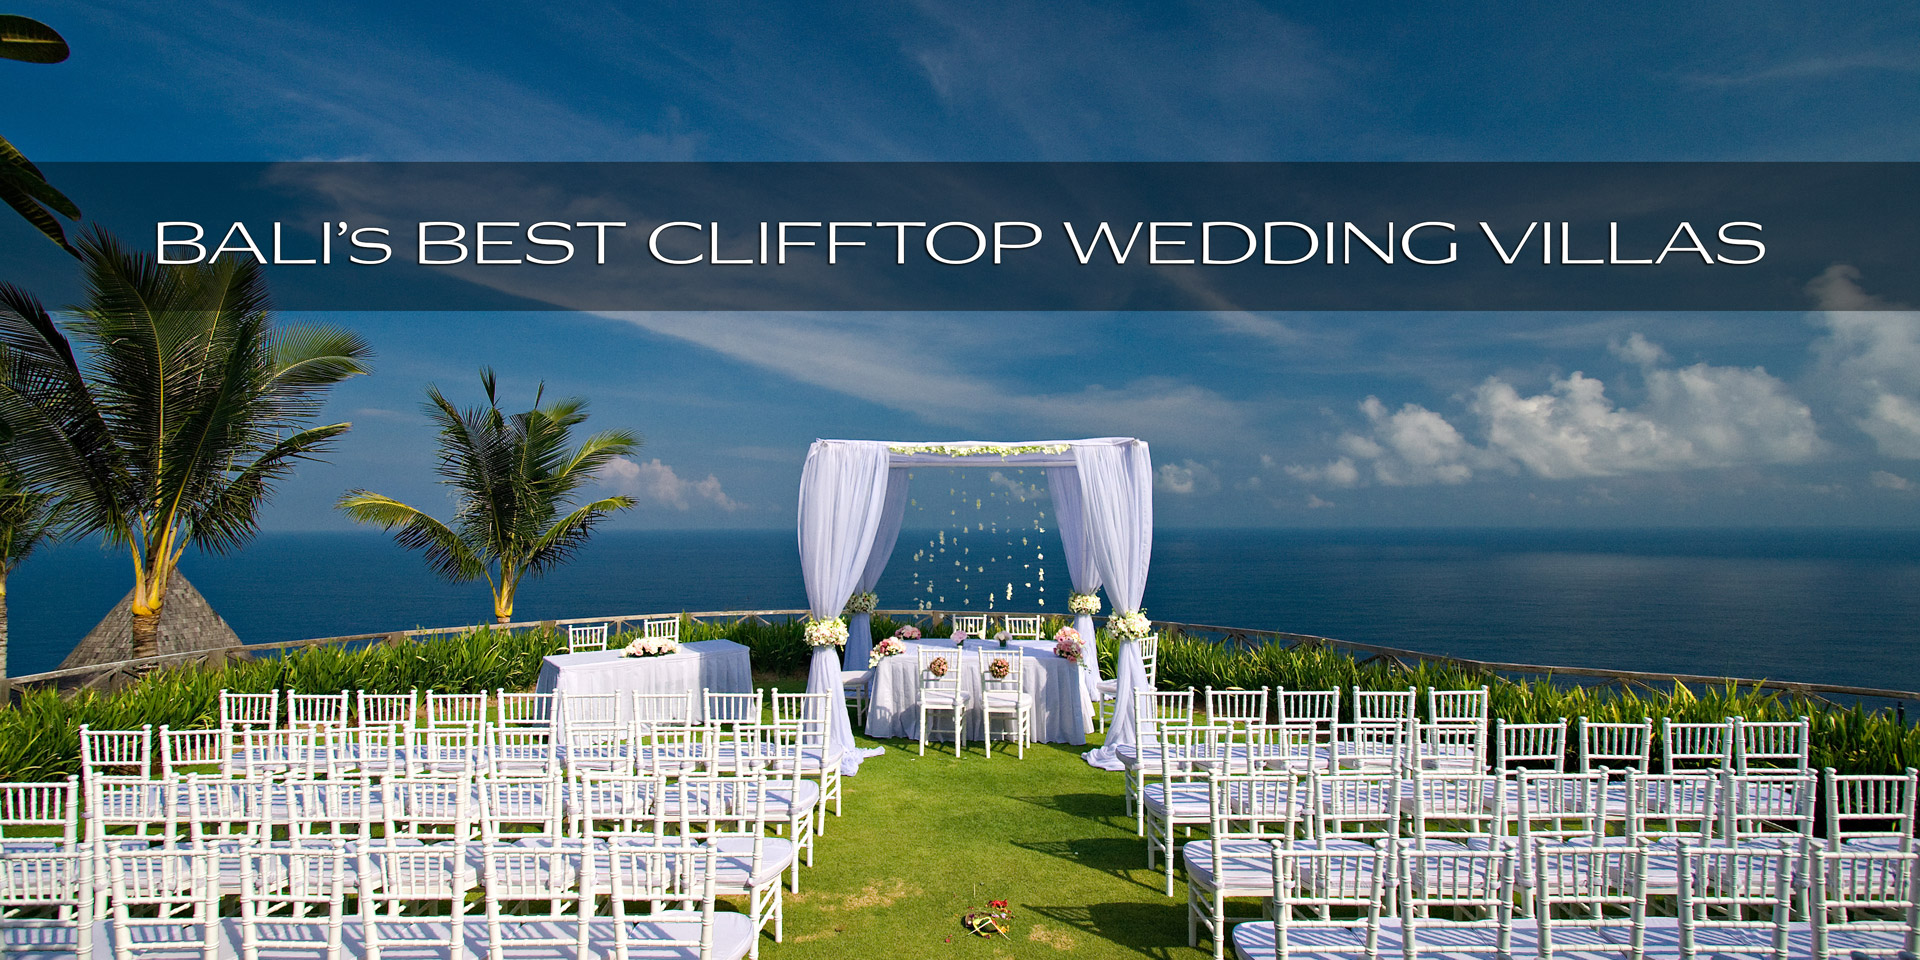 Best Clifftop Wedding Villas In Bali And Everything You Need To Know